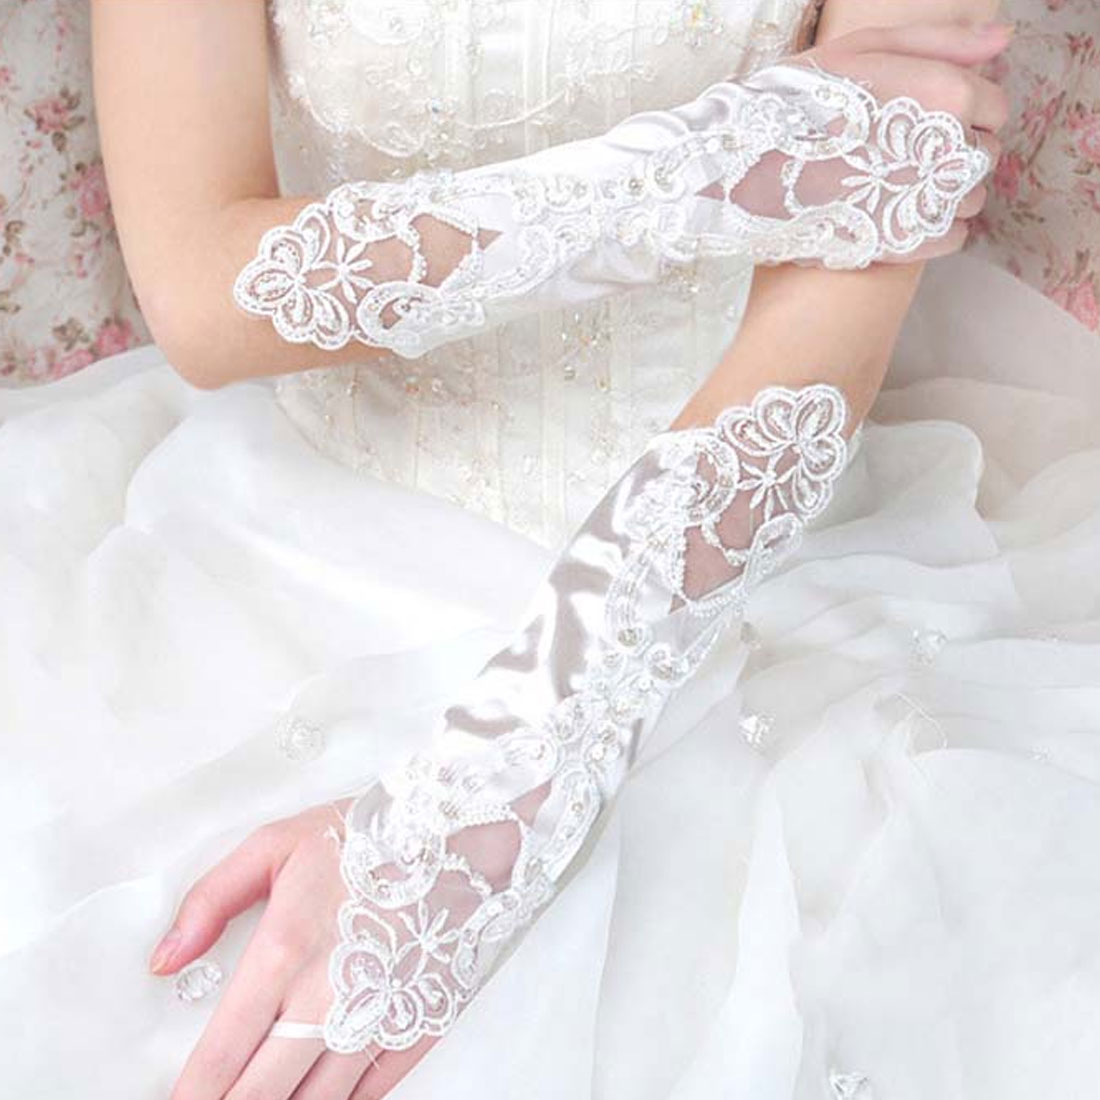 New Elbow Length Gloves Fingerless Lace Satin Wed Gloves Embroidered Lace Gloves Accessories